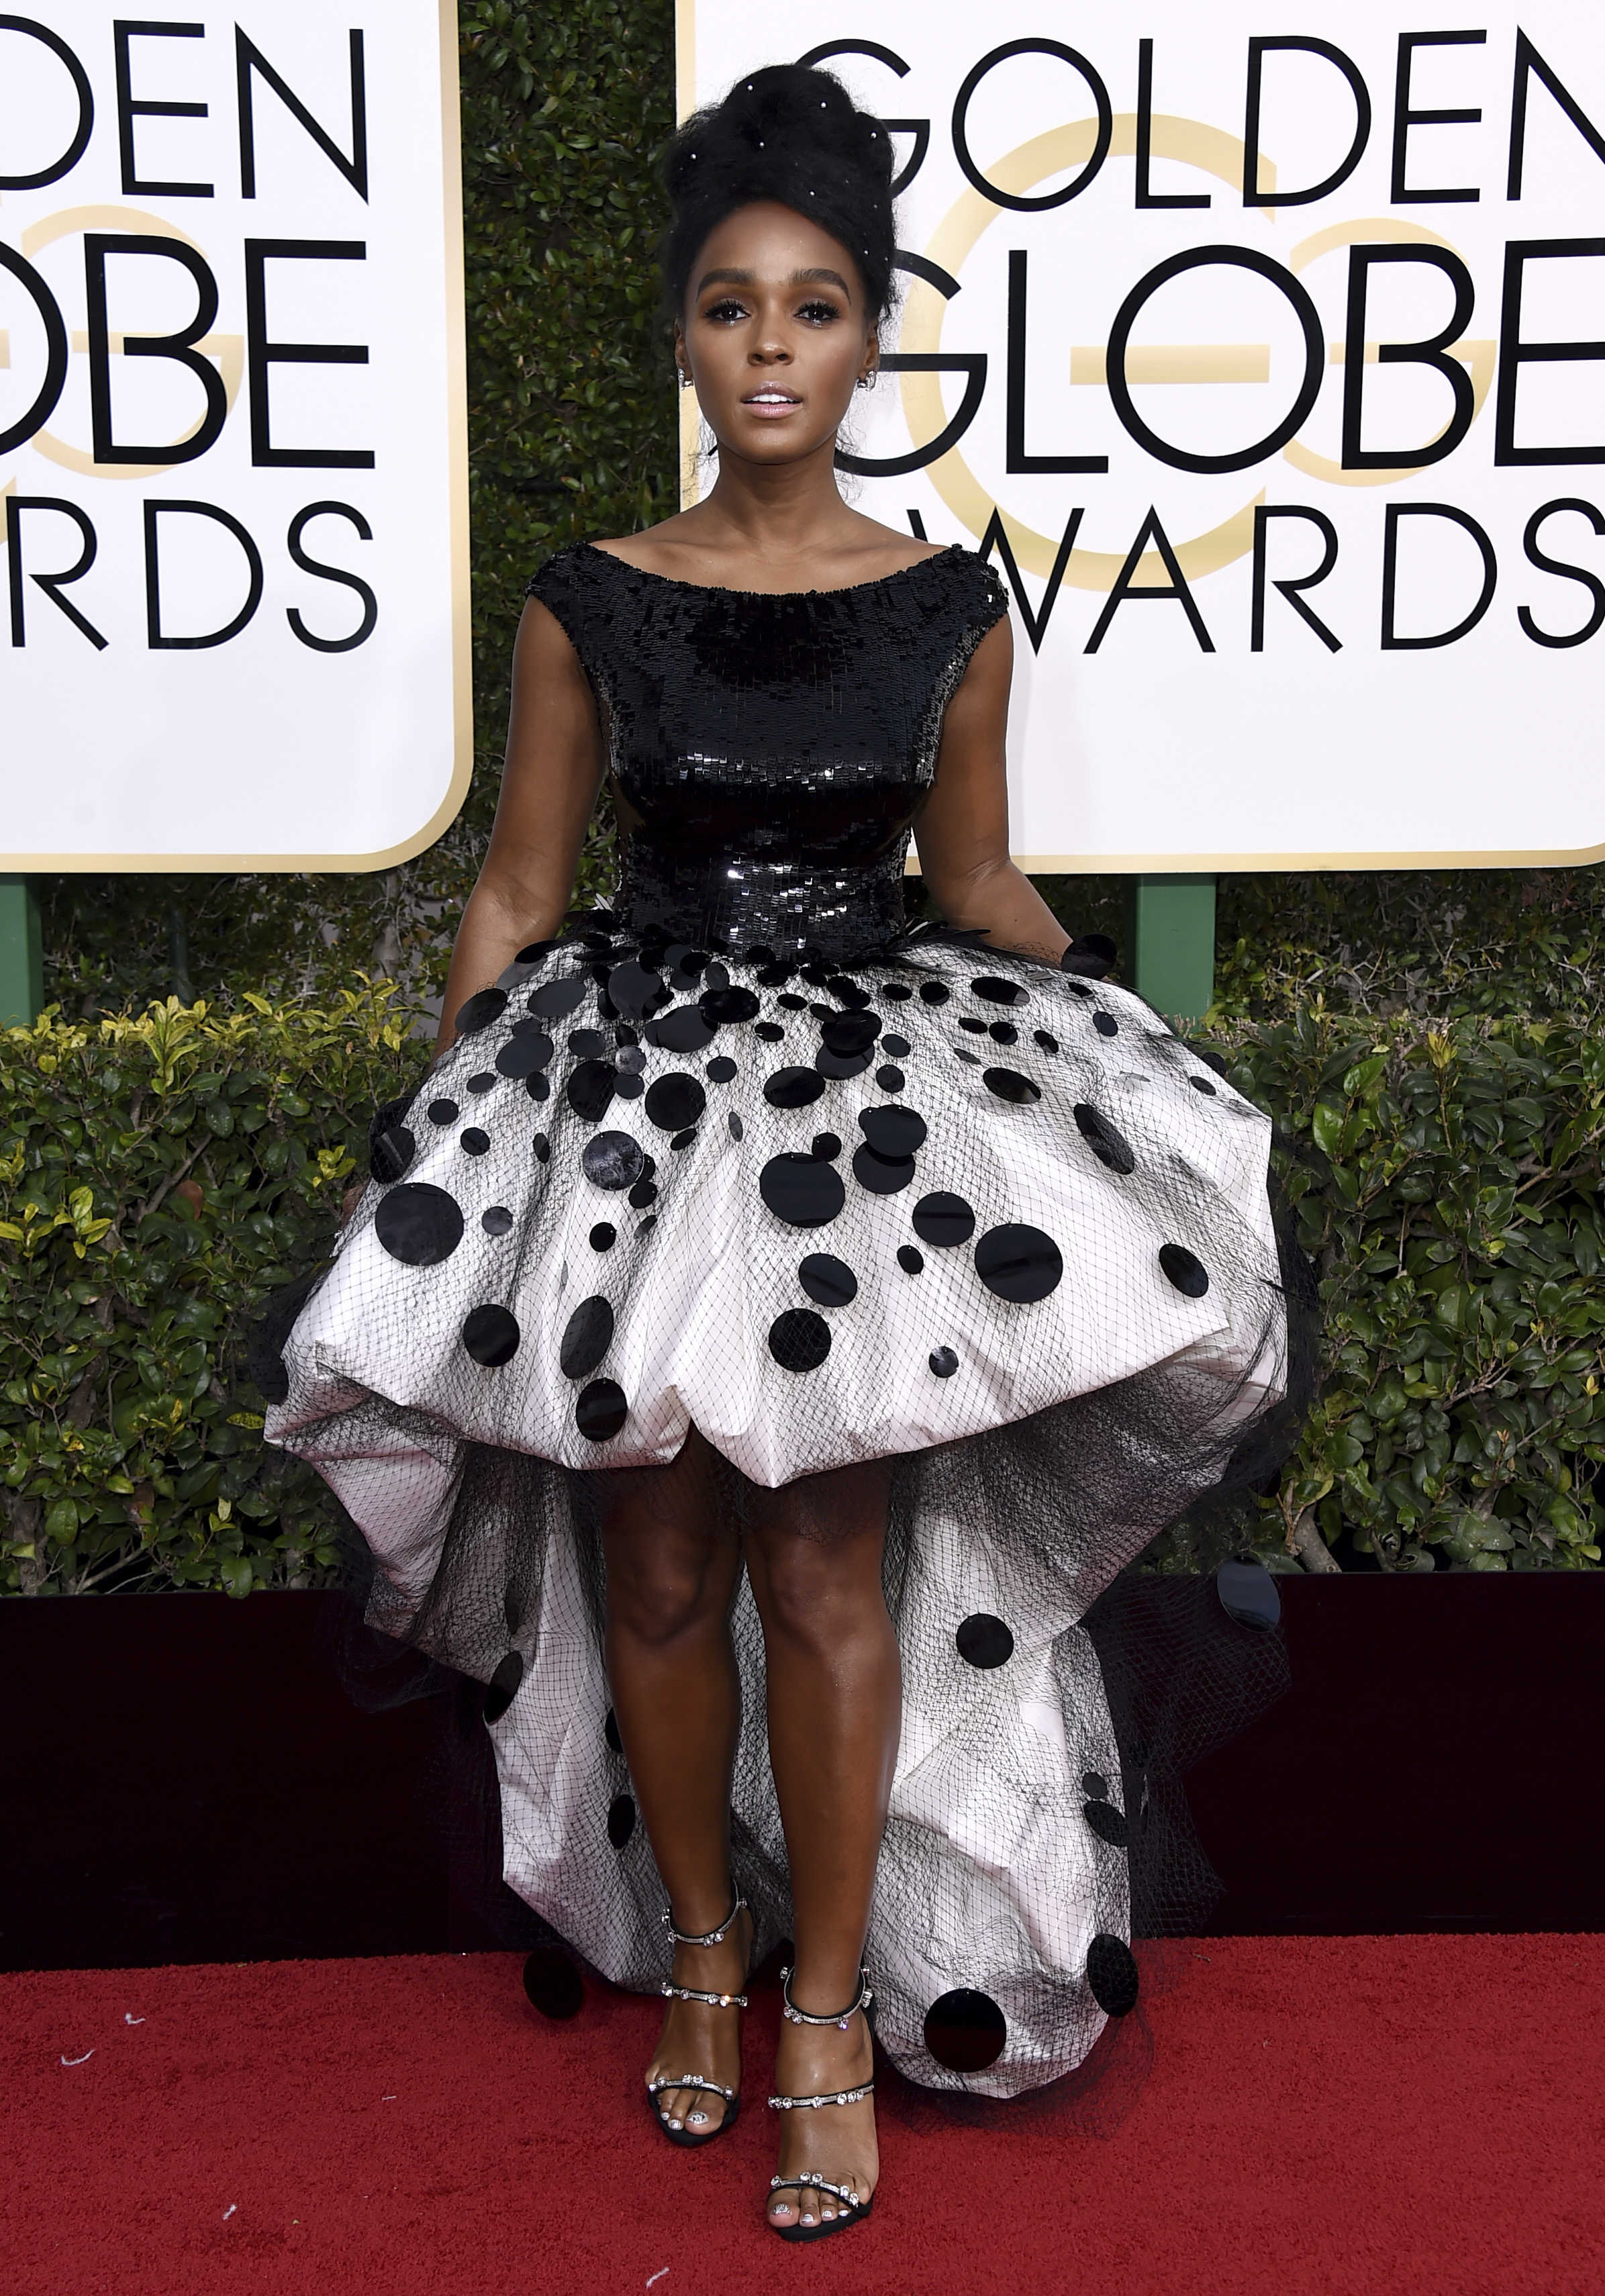 Fashion Police Golden Globes 2017 Best Dressed Latest Trend